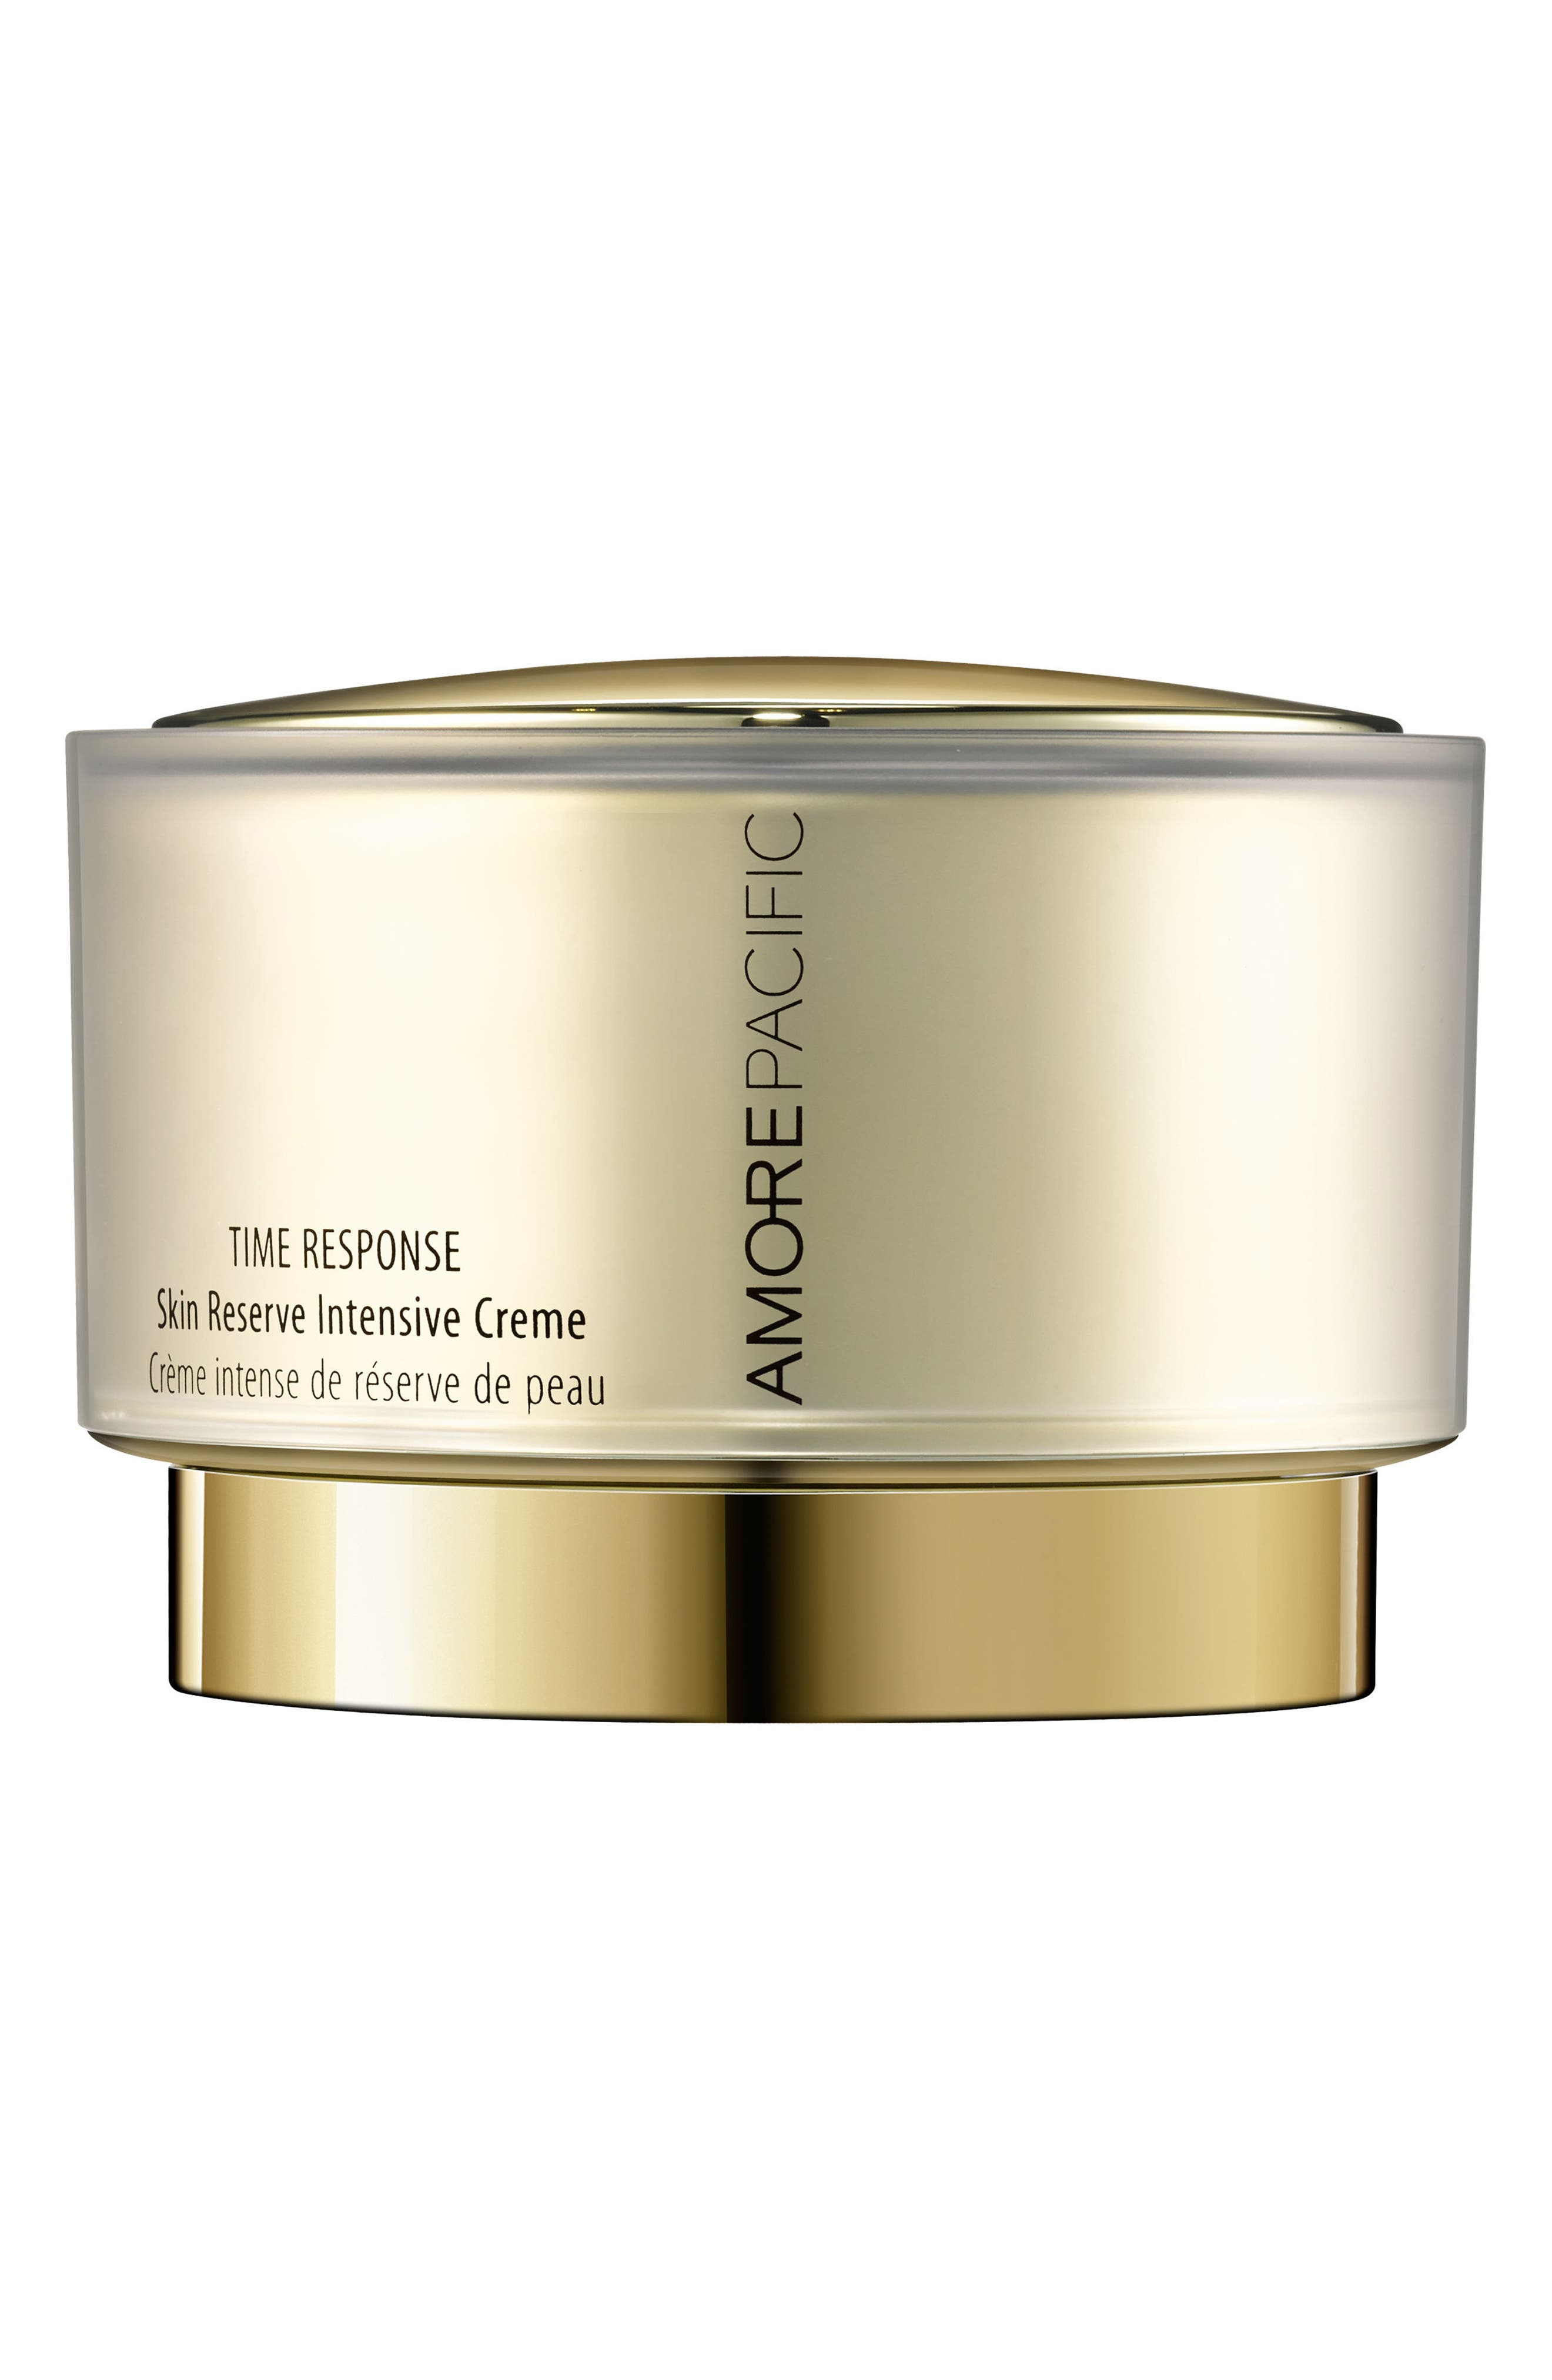 AMOREPACIFIC Time Response Skin Reserve Intensive Crème (Nordstrom Exclusive)